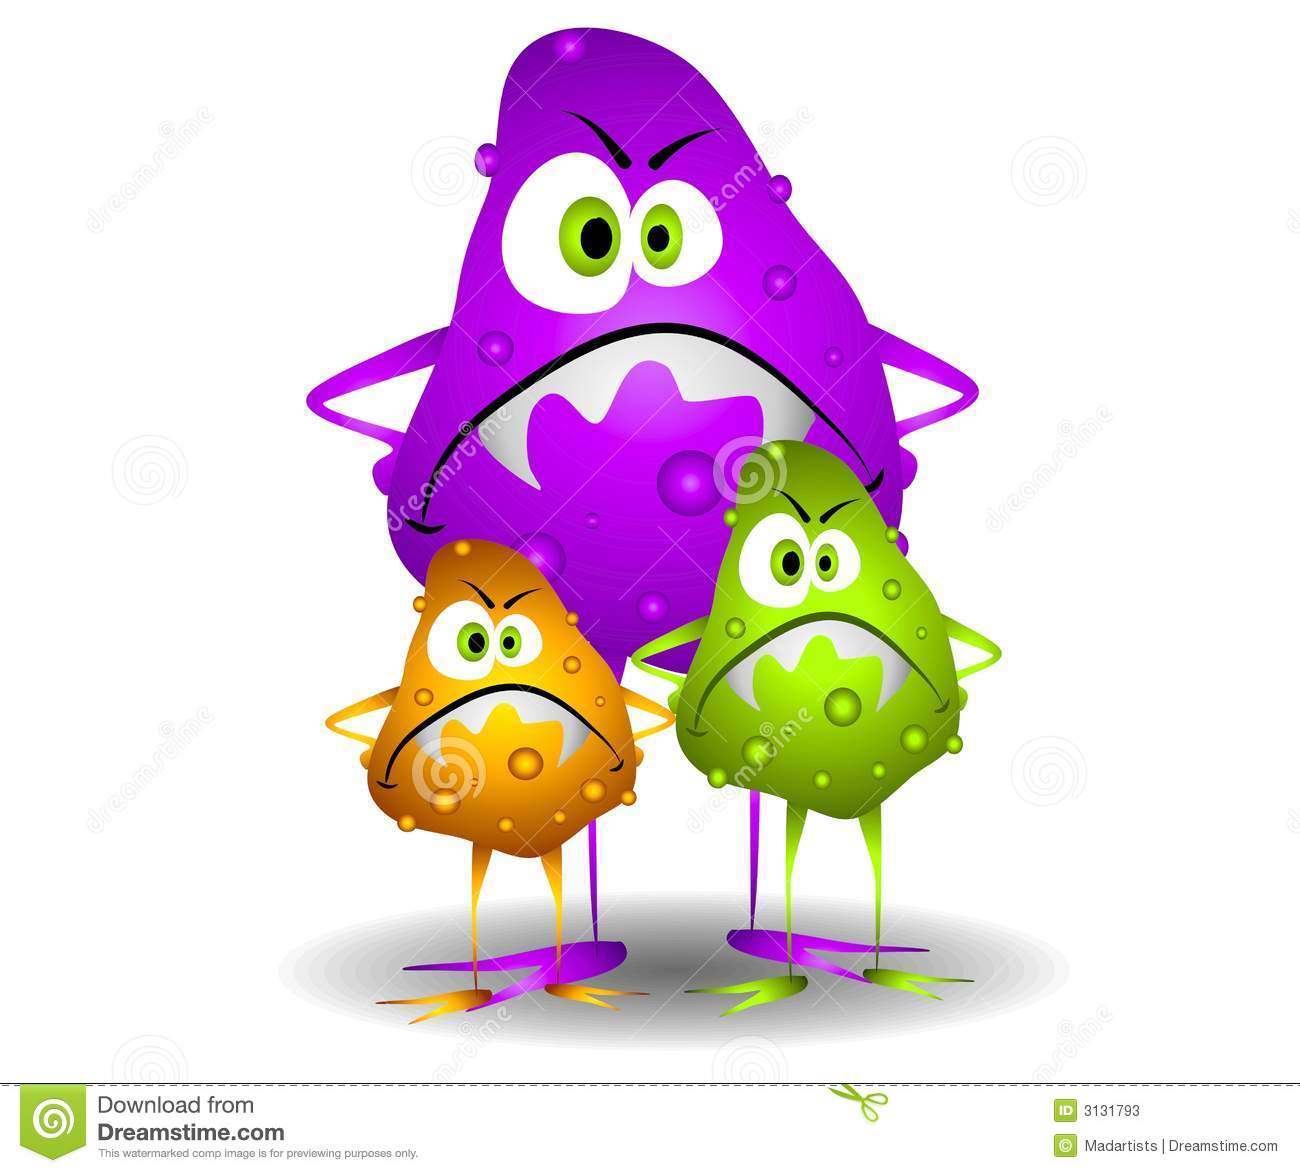 Art cartoon illustration of 3 nasty looking germs viruses or bacteria